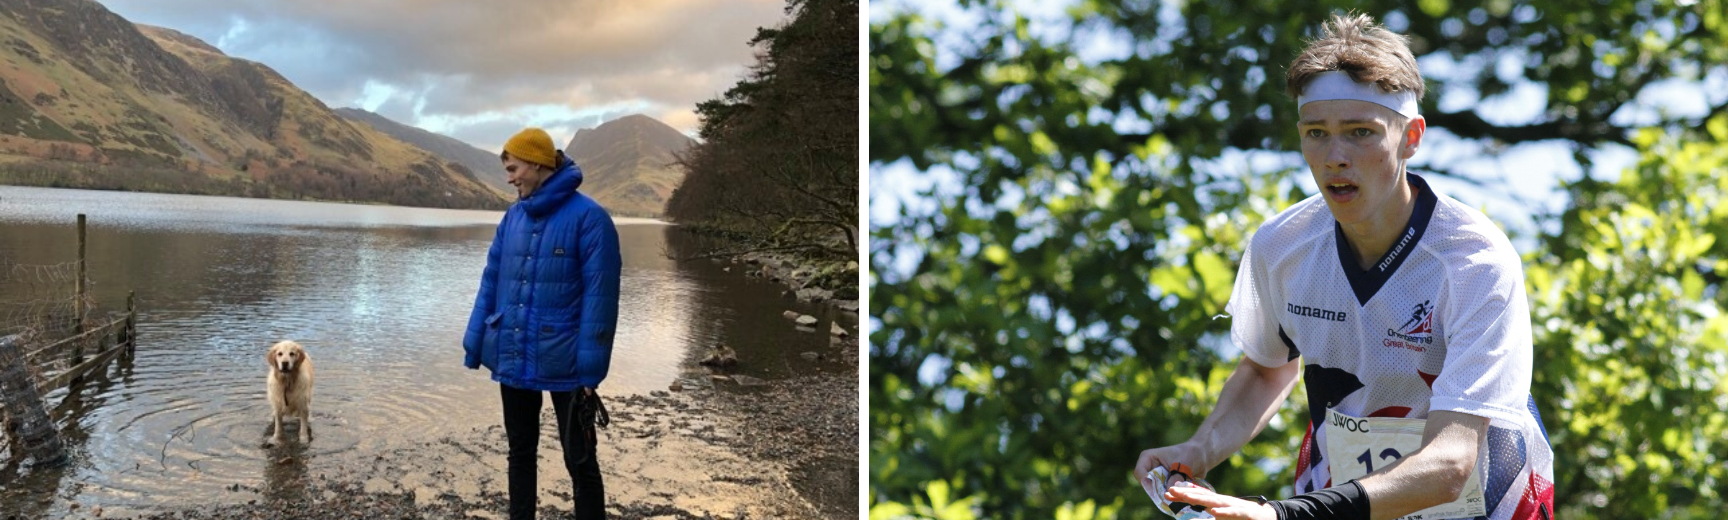 A photo of Zac and his dog by a lake and a photo of Zac competing for Great Britain